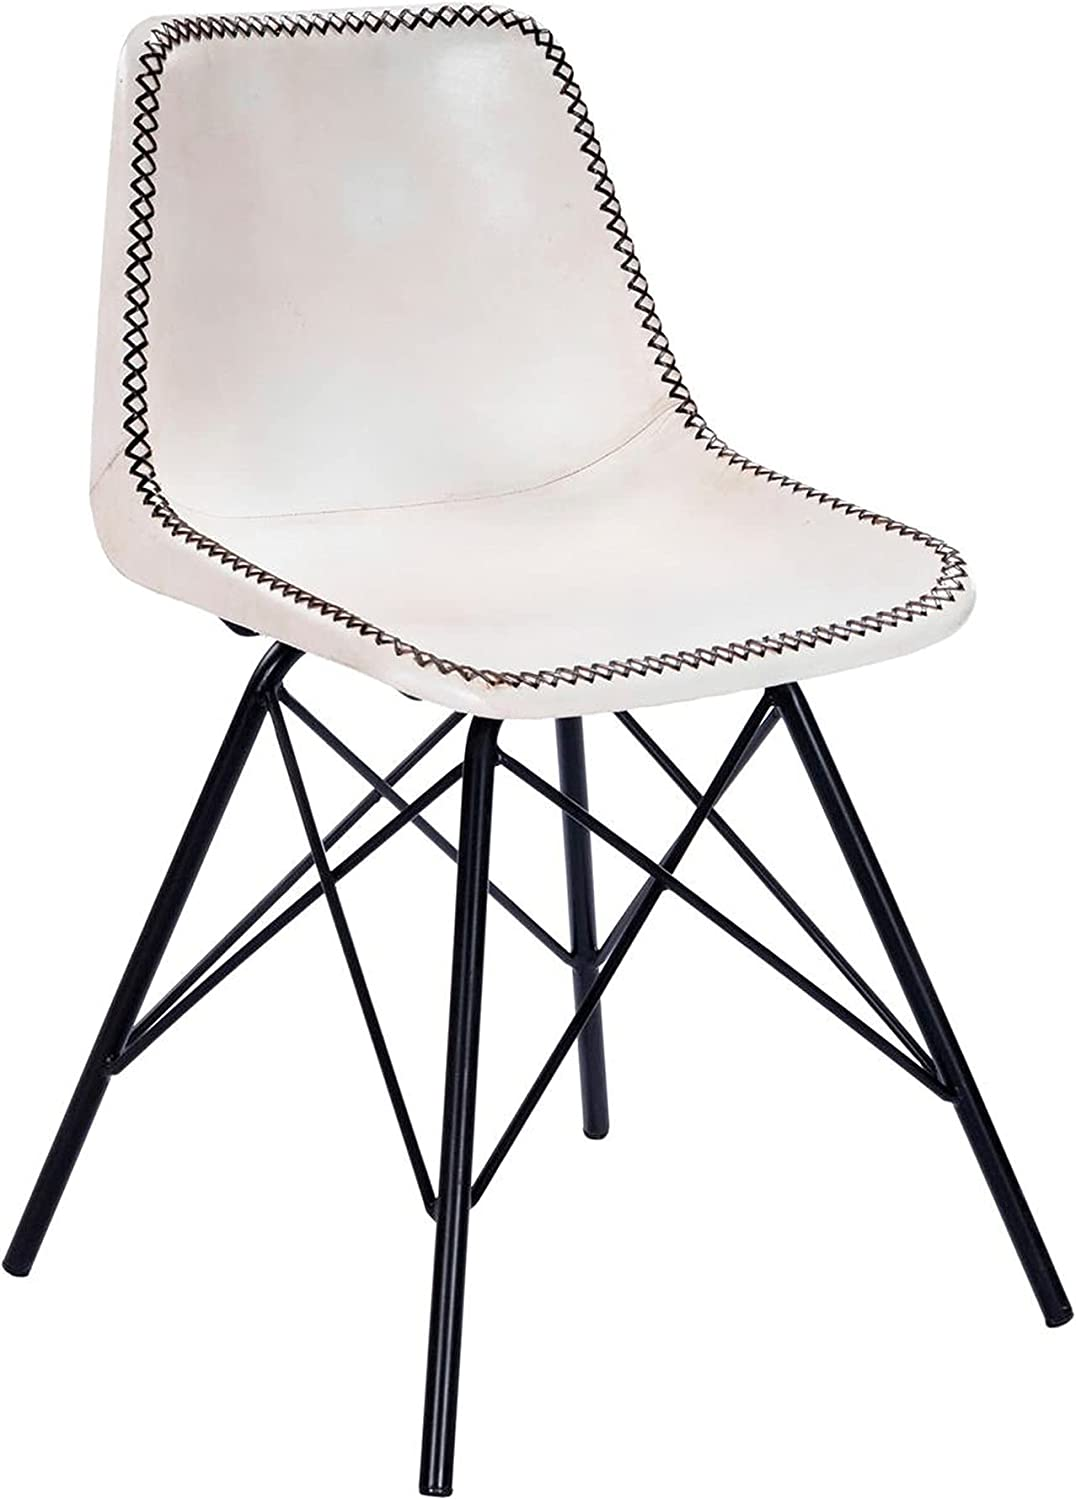 Offex Mid-Century Modern White Product and C Side Black Stitched Leather Seasonal Wrap Introduction